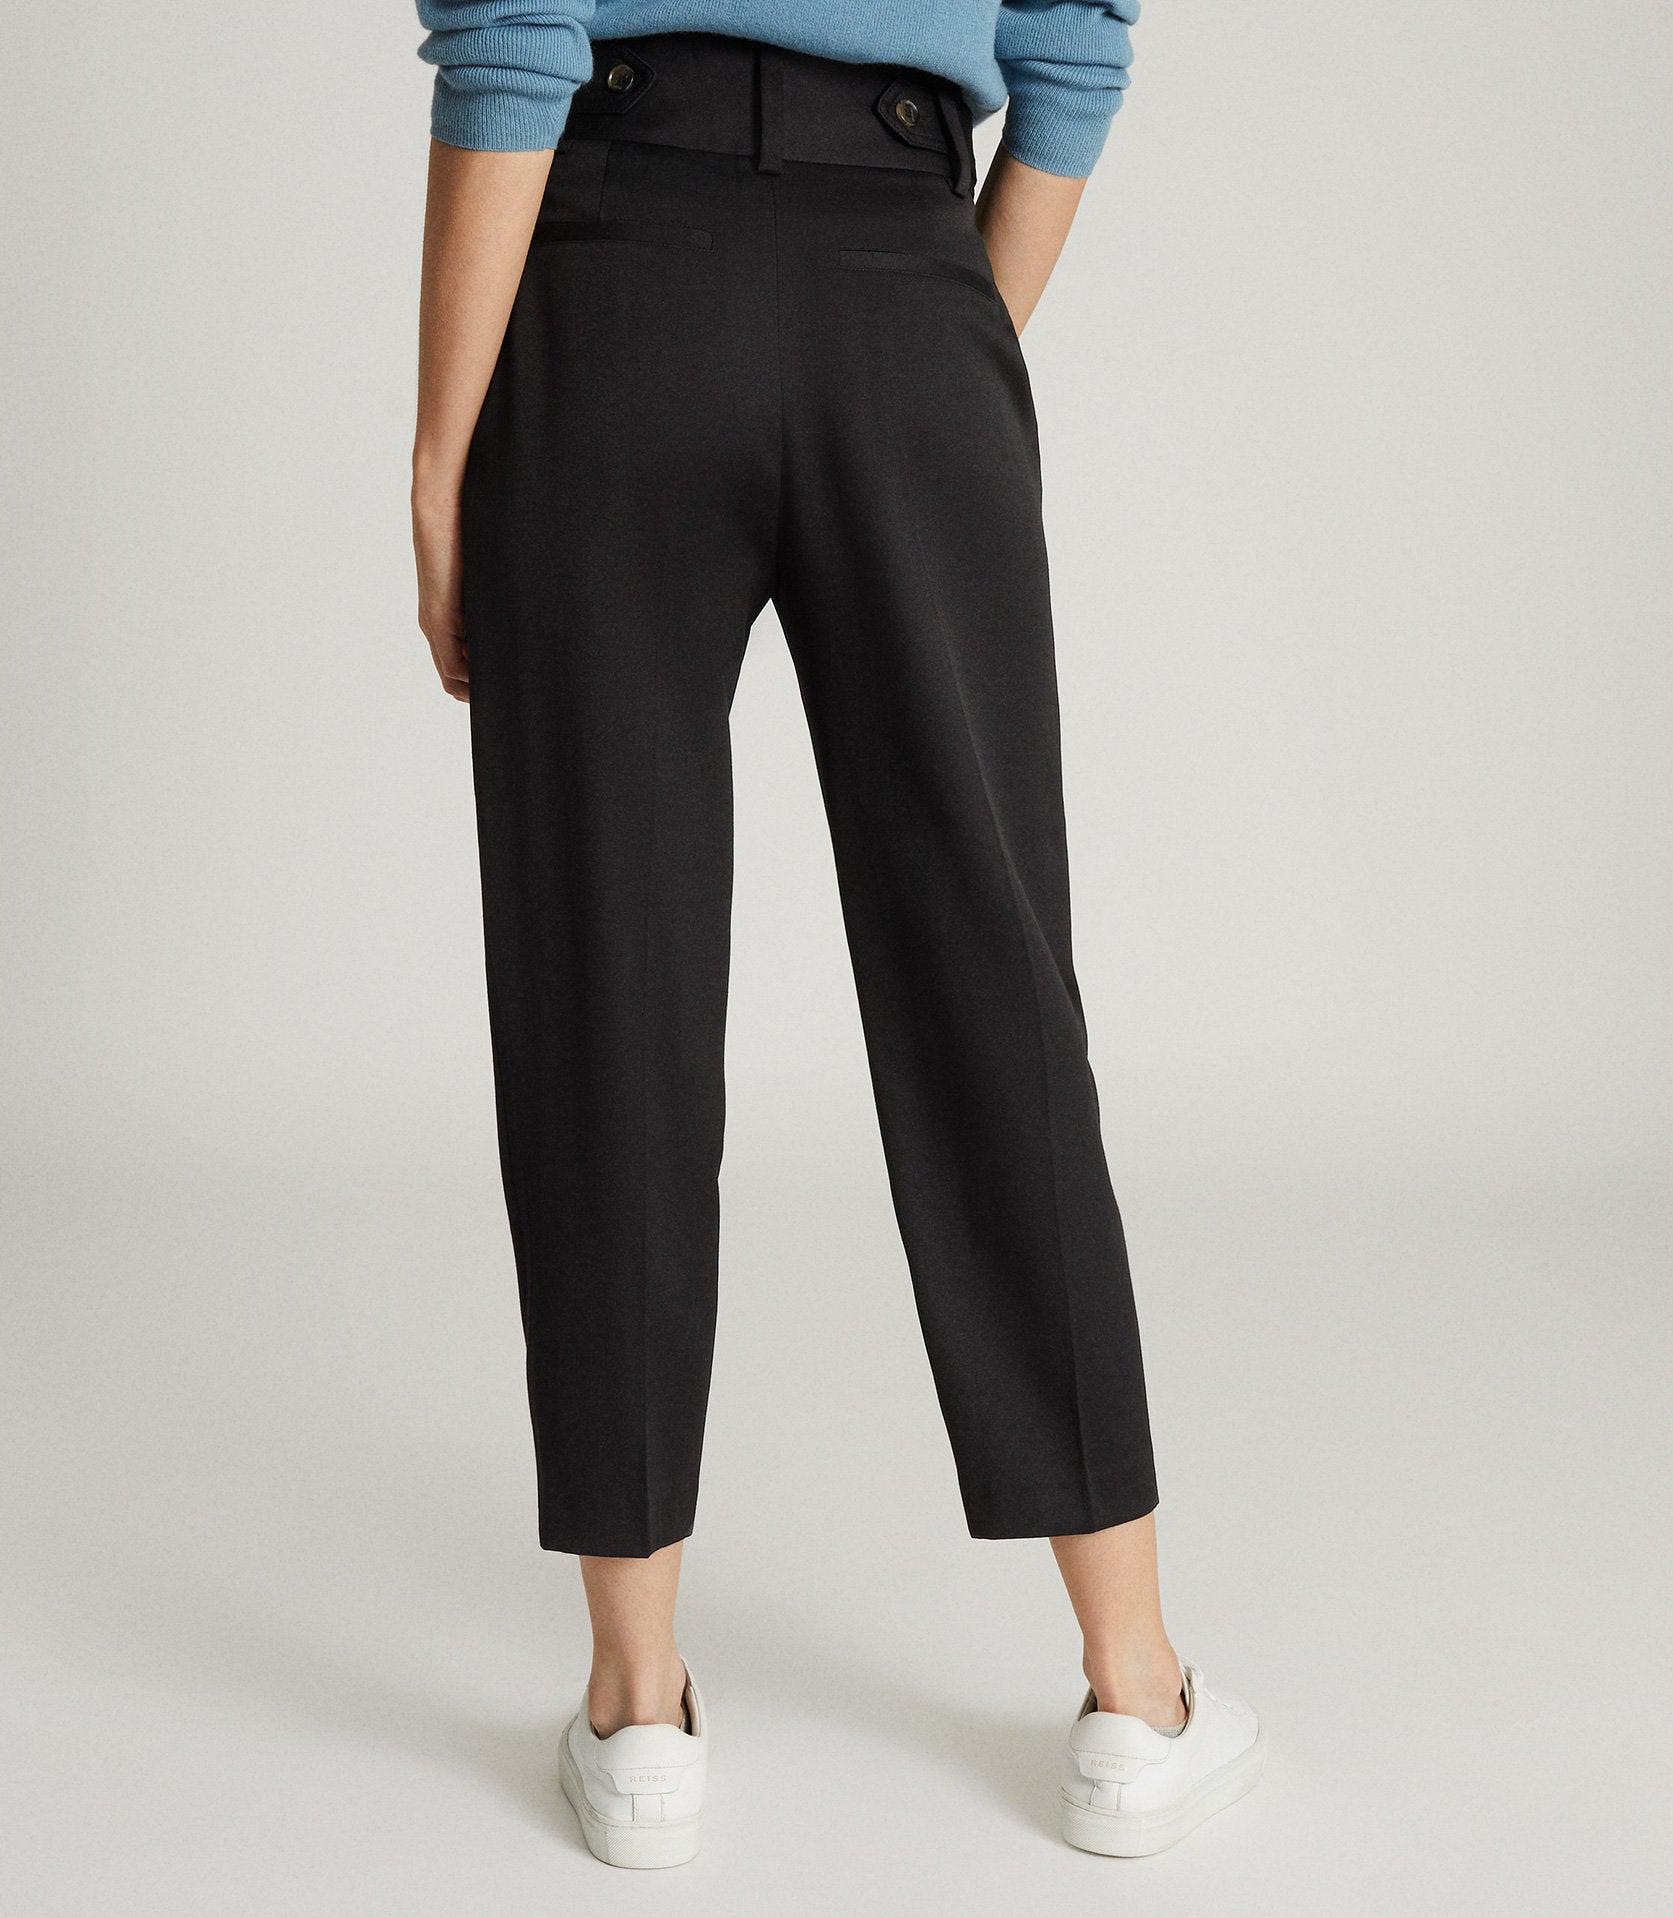 STANTON - CROPPED TAPERED PANTS 2